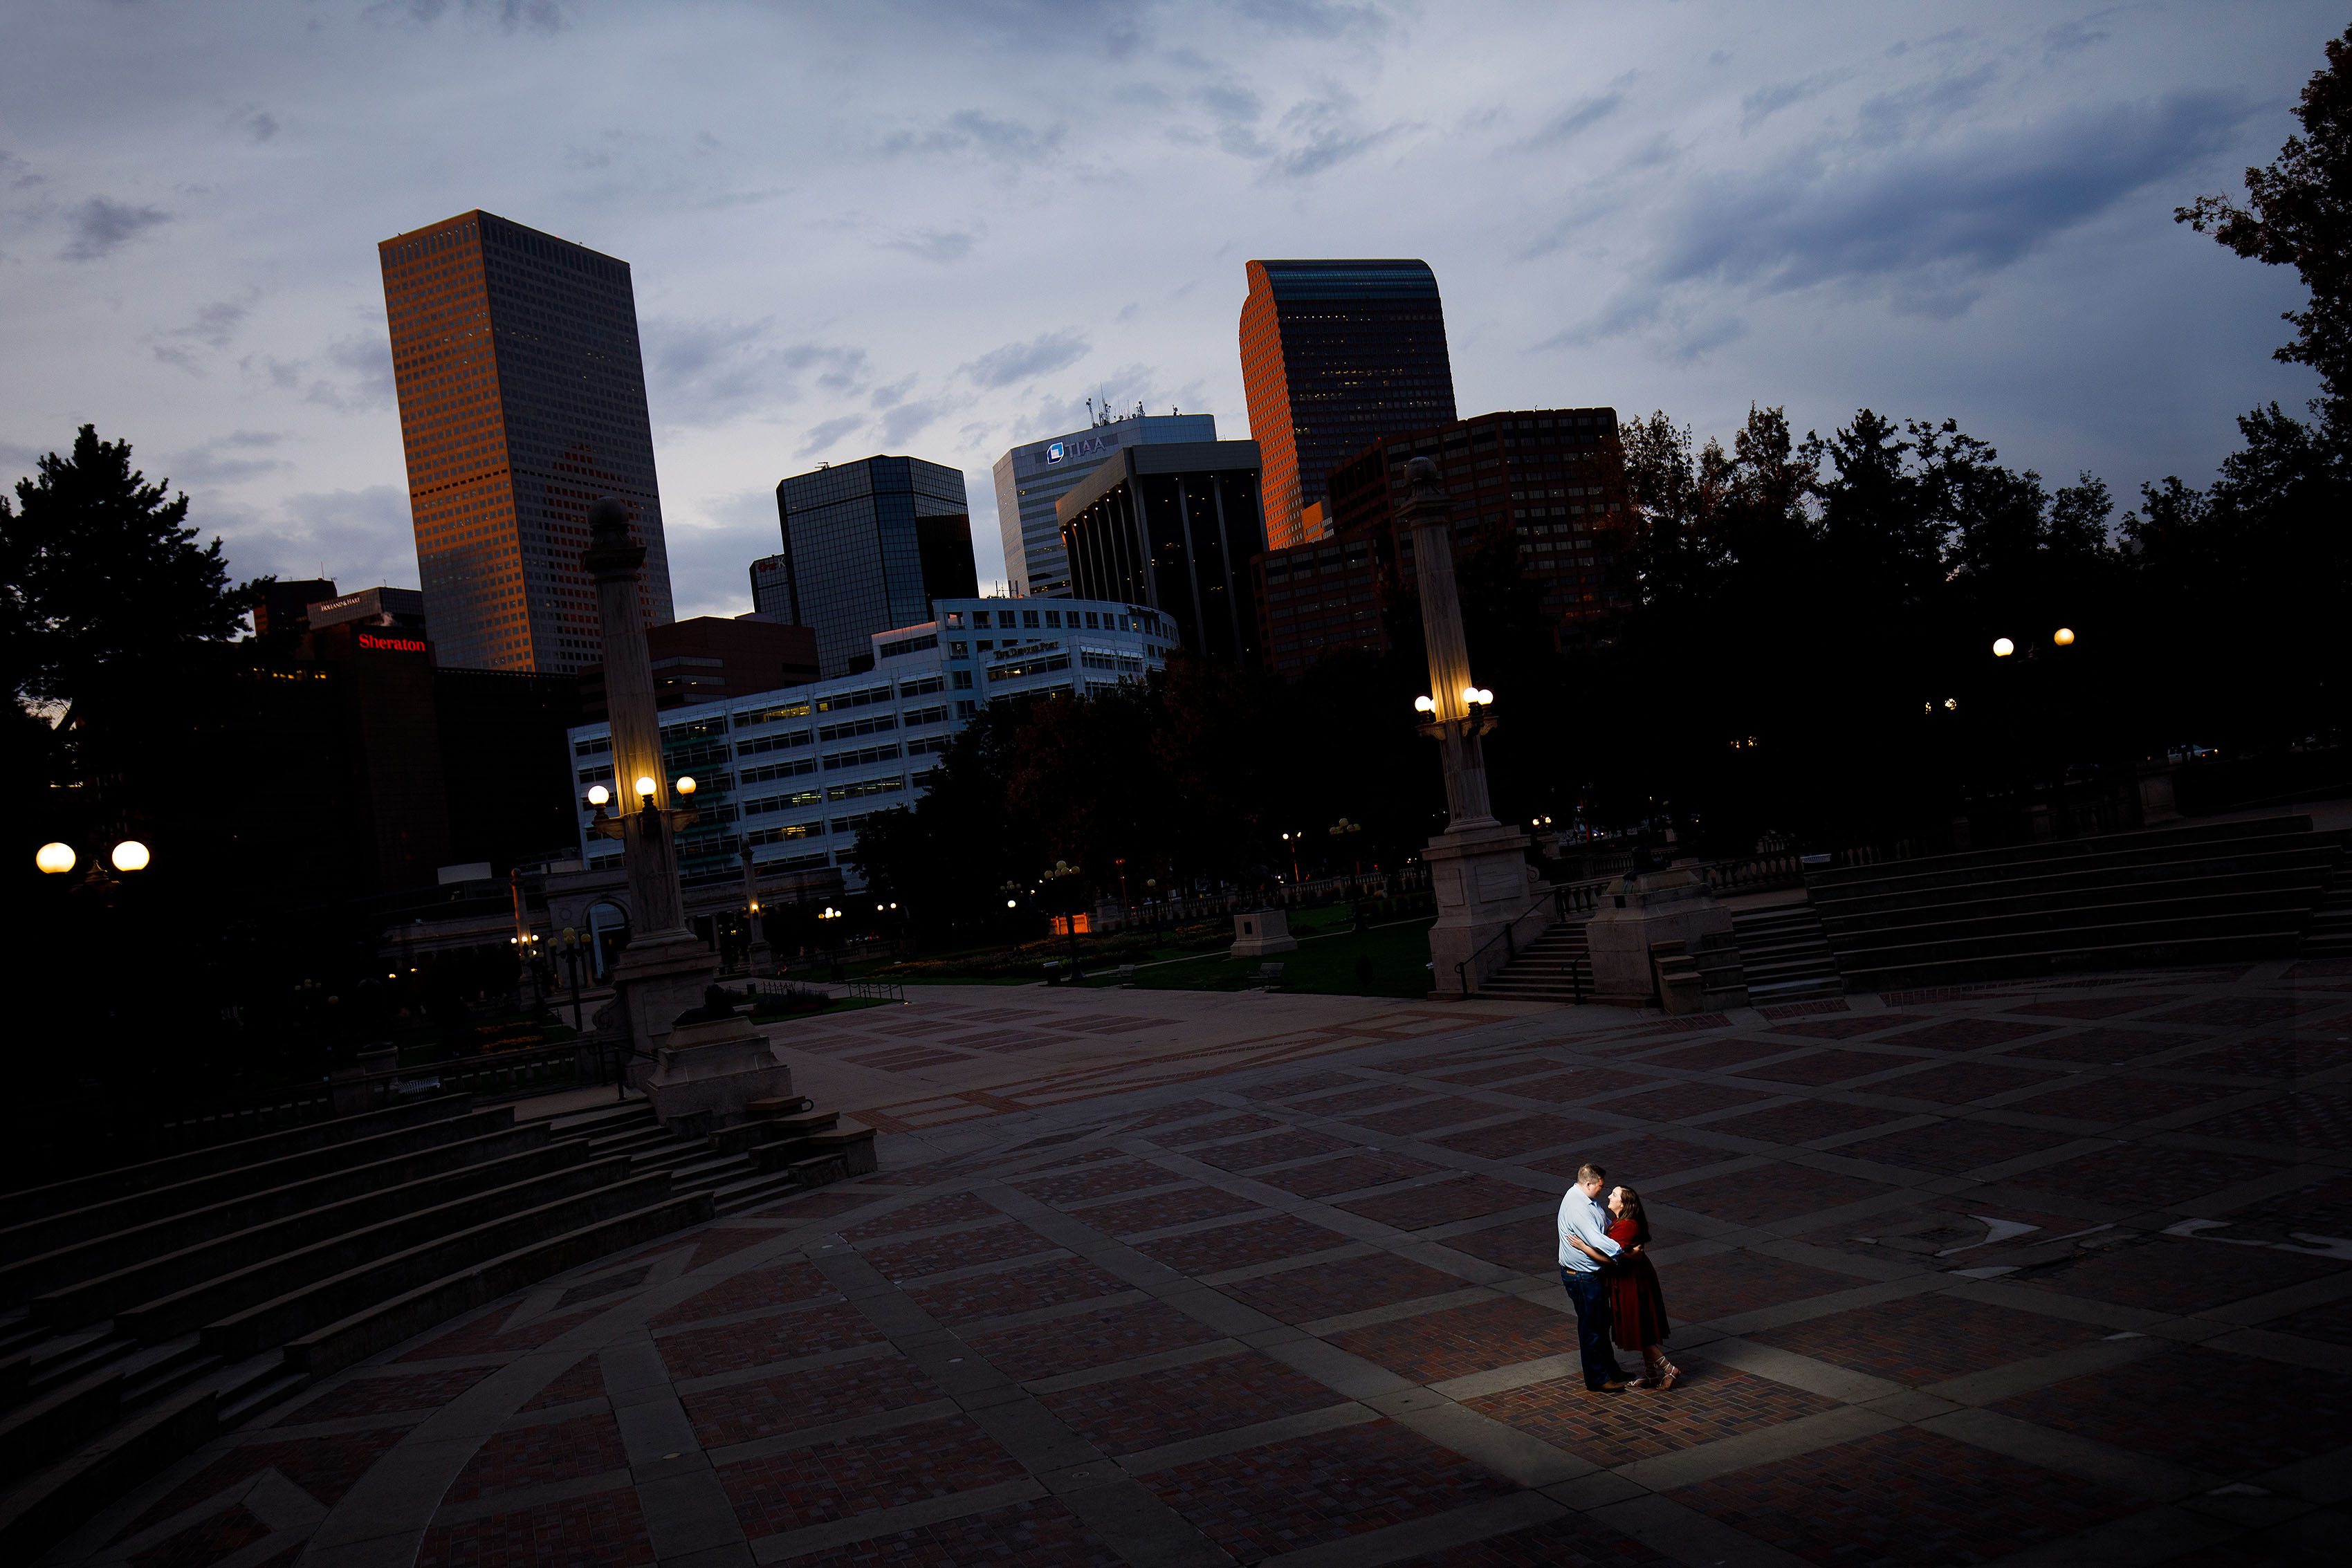 Matt and Katie share a moment in the Civic Center Park ampatheatre as the sun illuminates the Denver skyline and cash register building